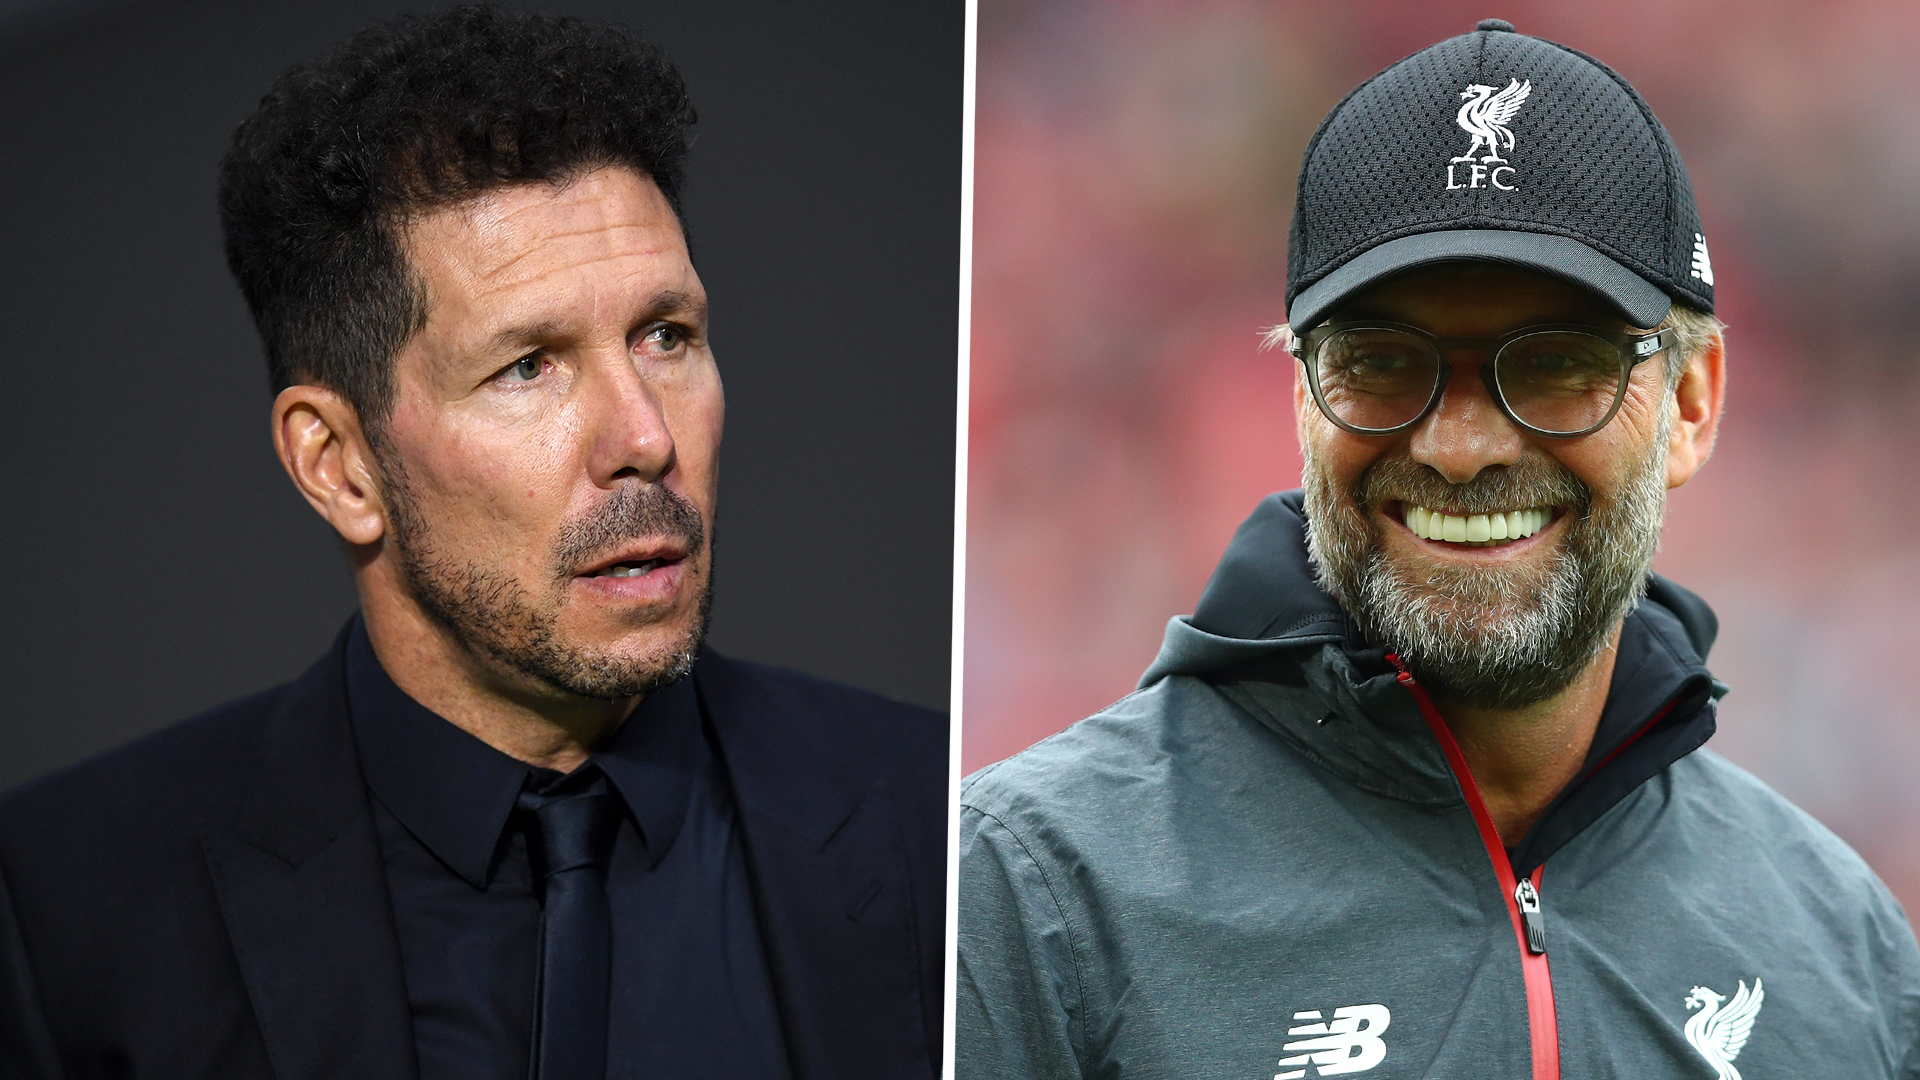 Simeone reveals Liverpool boss Klopp is the rival manager he admires most